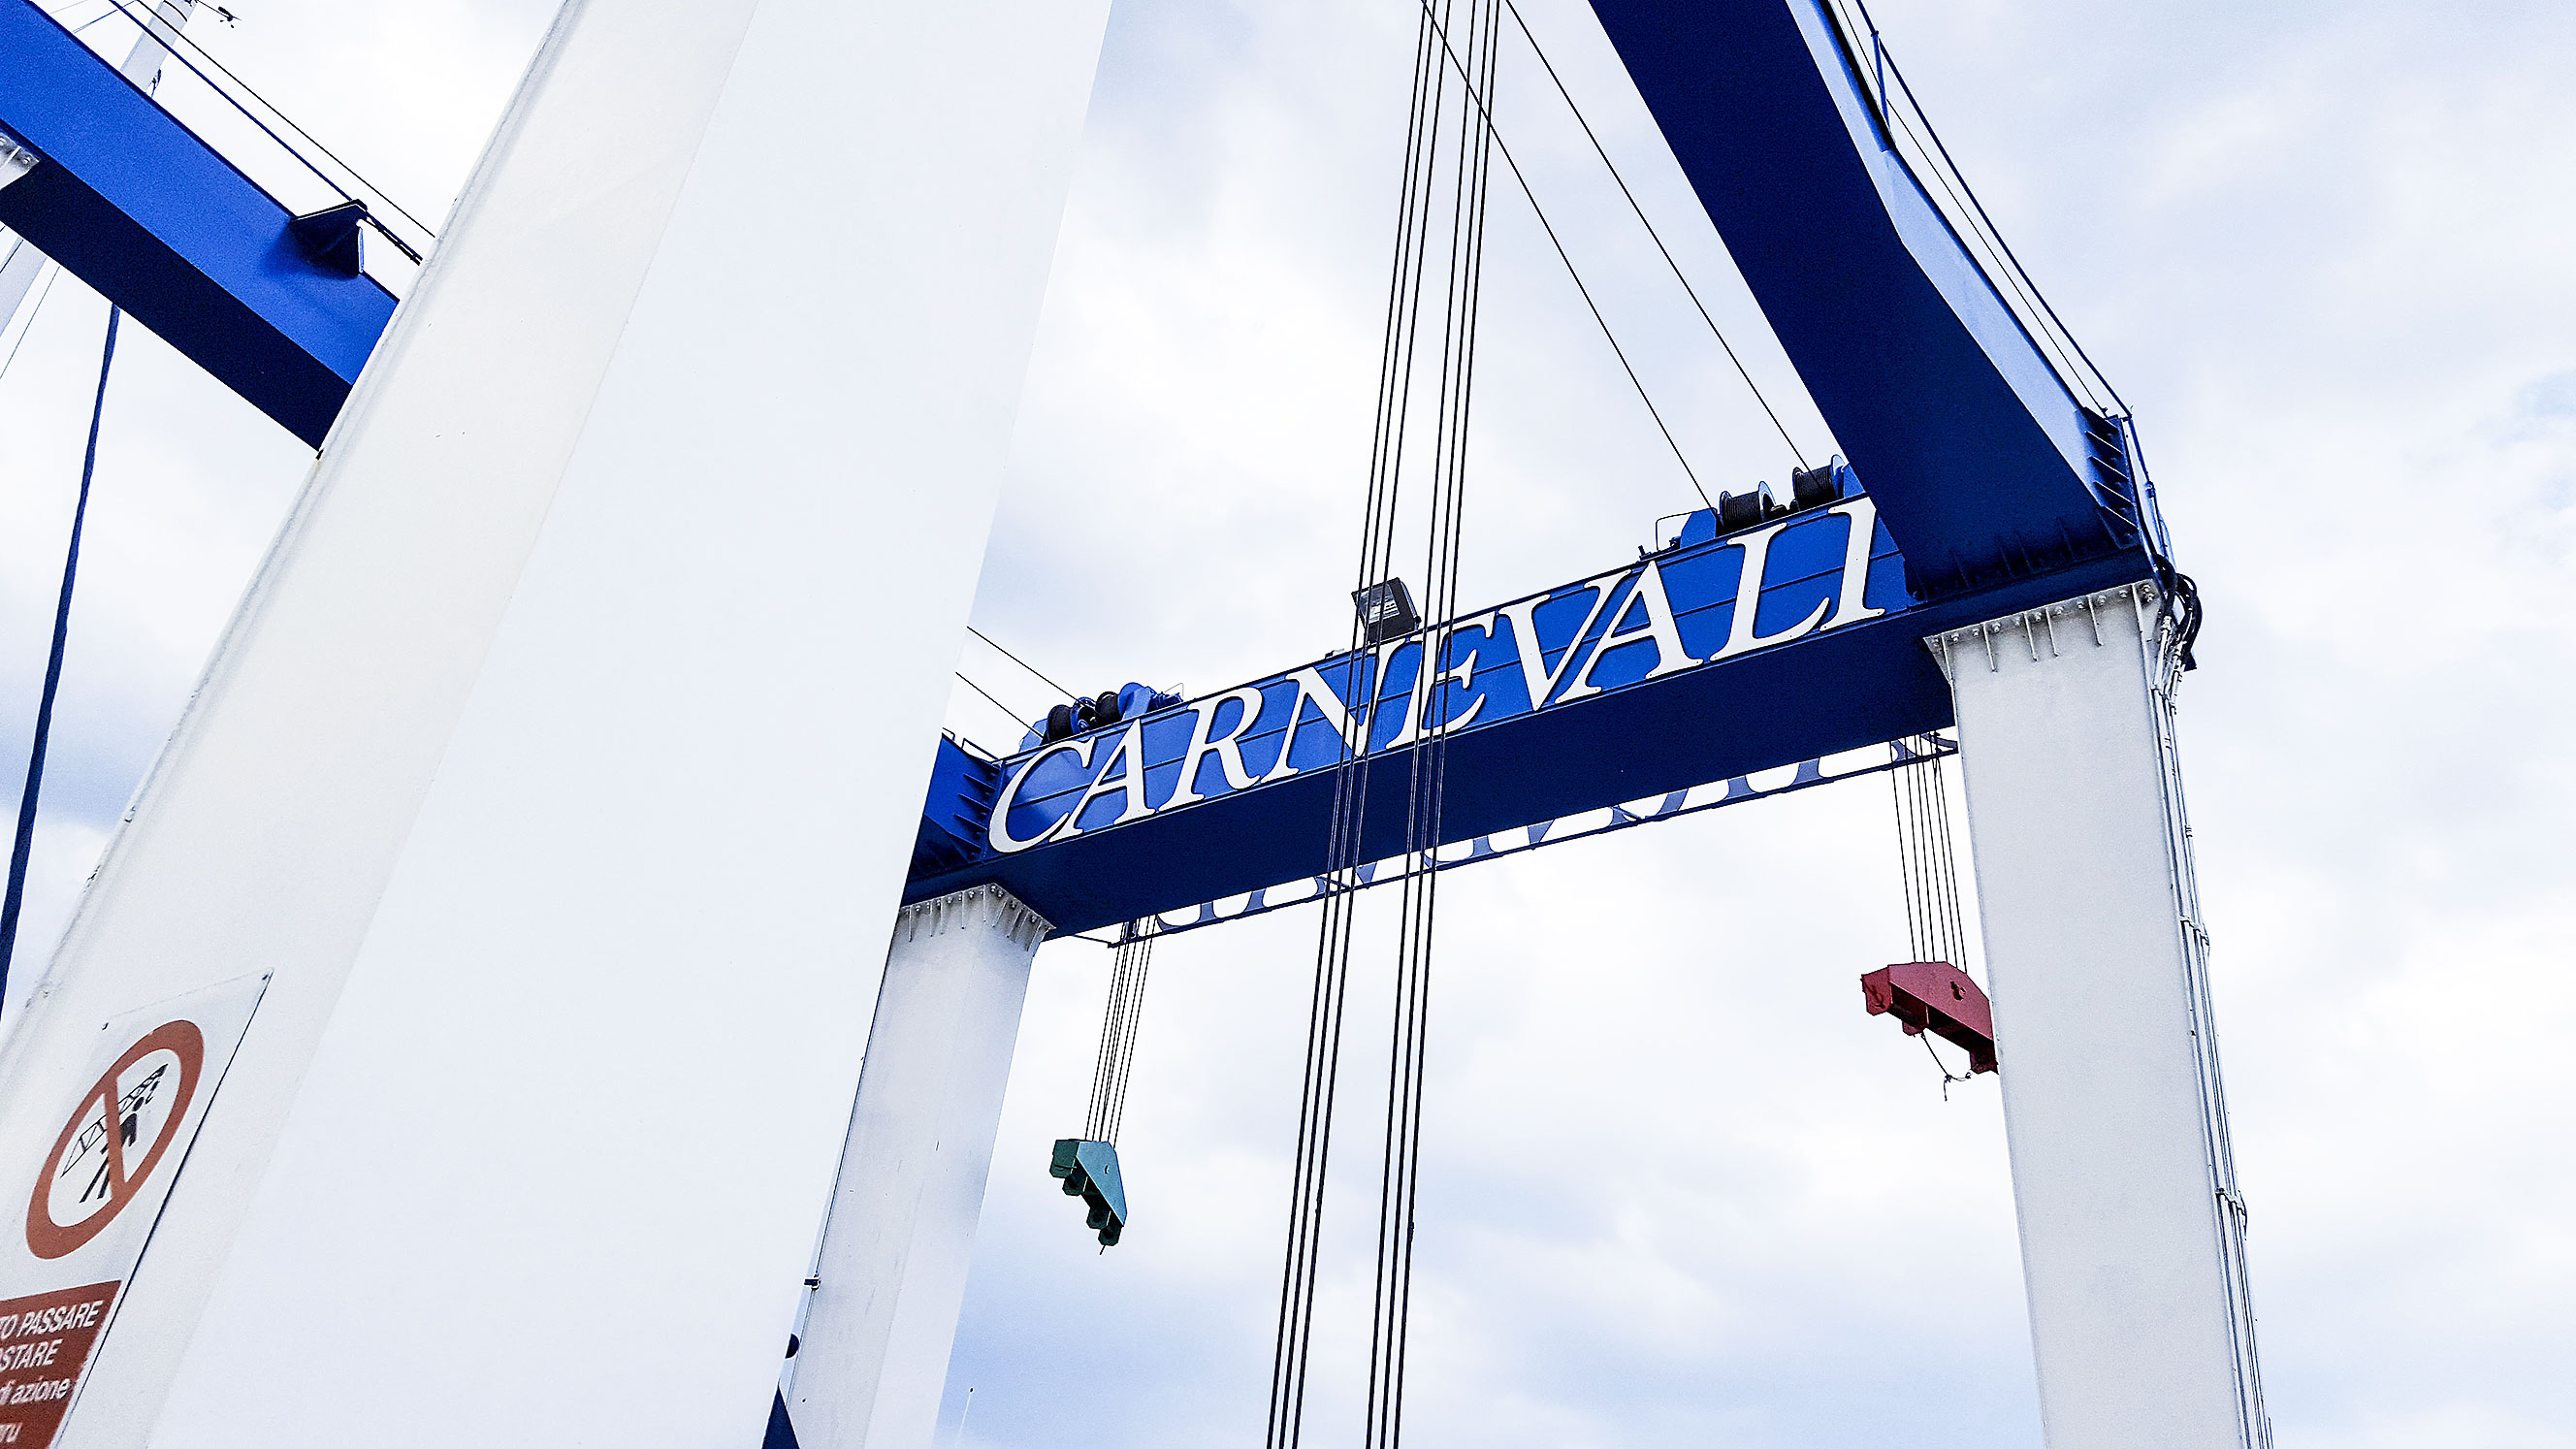 Virtual Tour Yacht - Cantiere Navale Carnevali Yacht srl